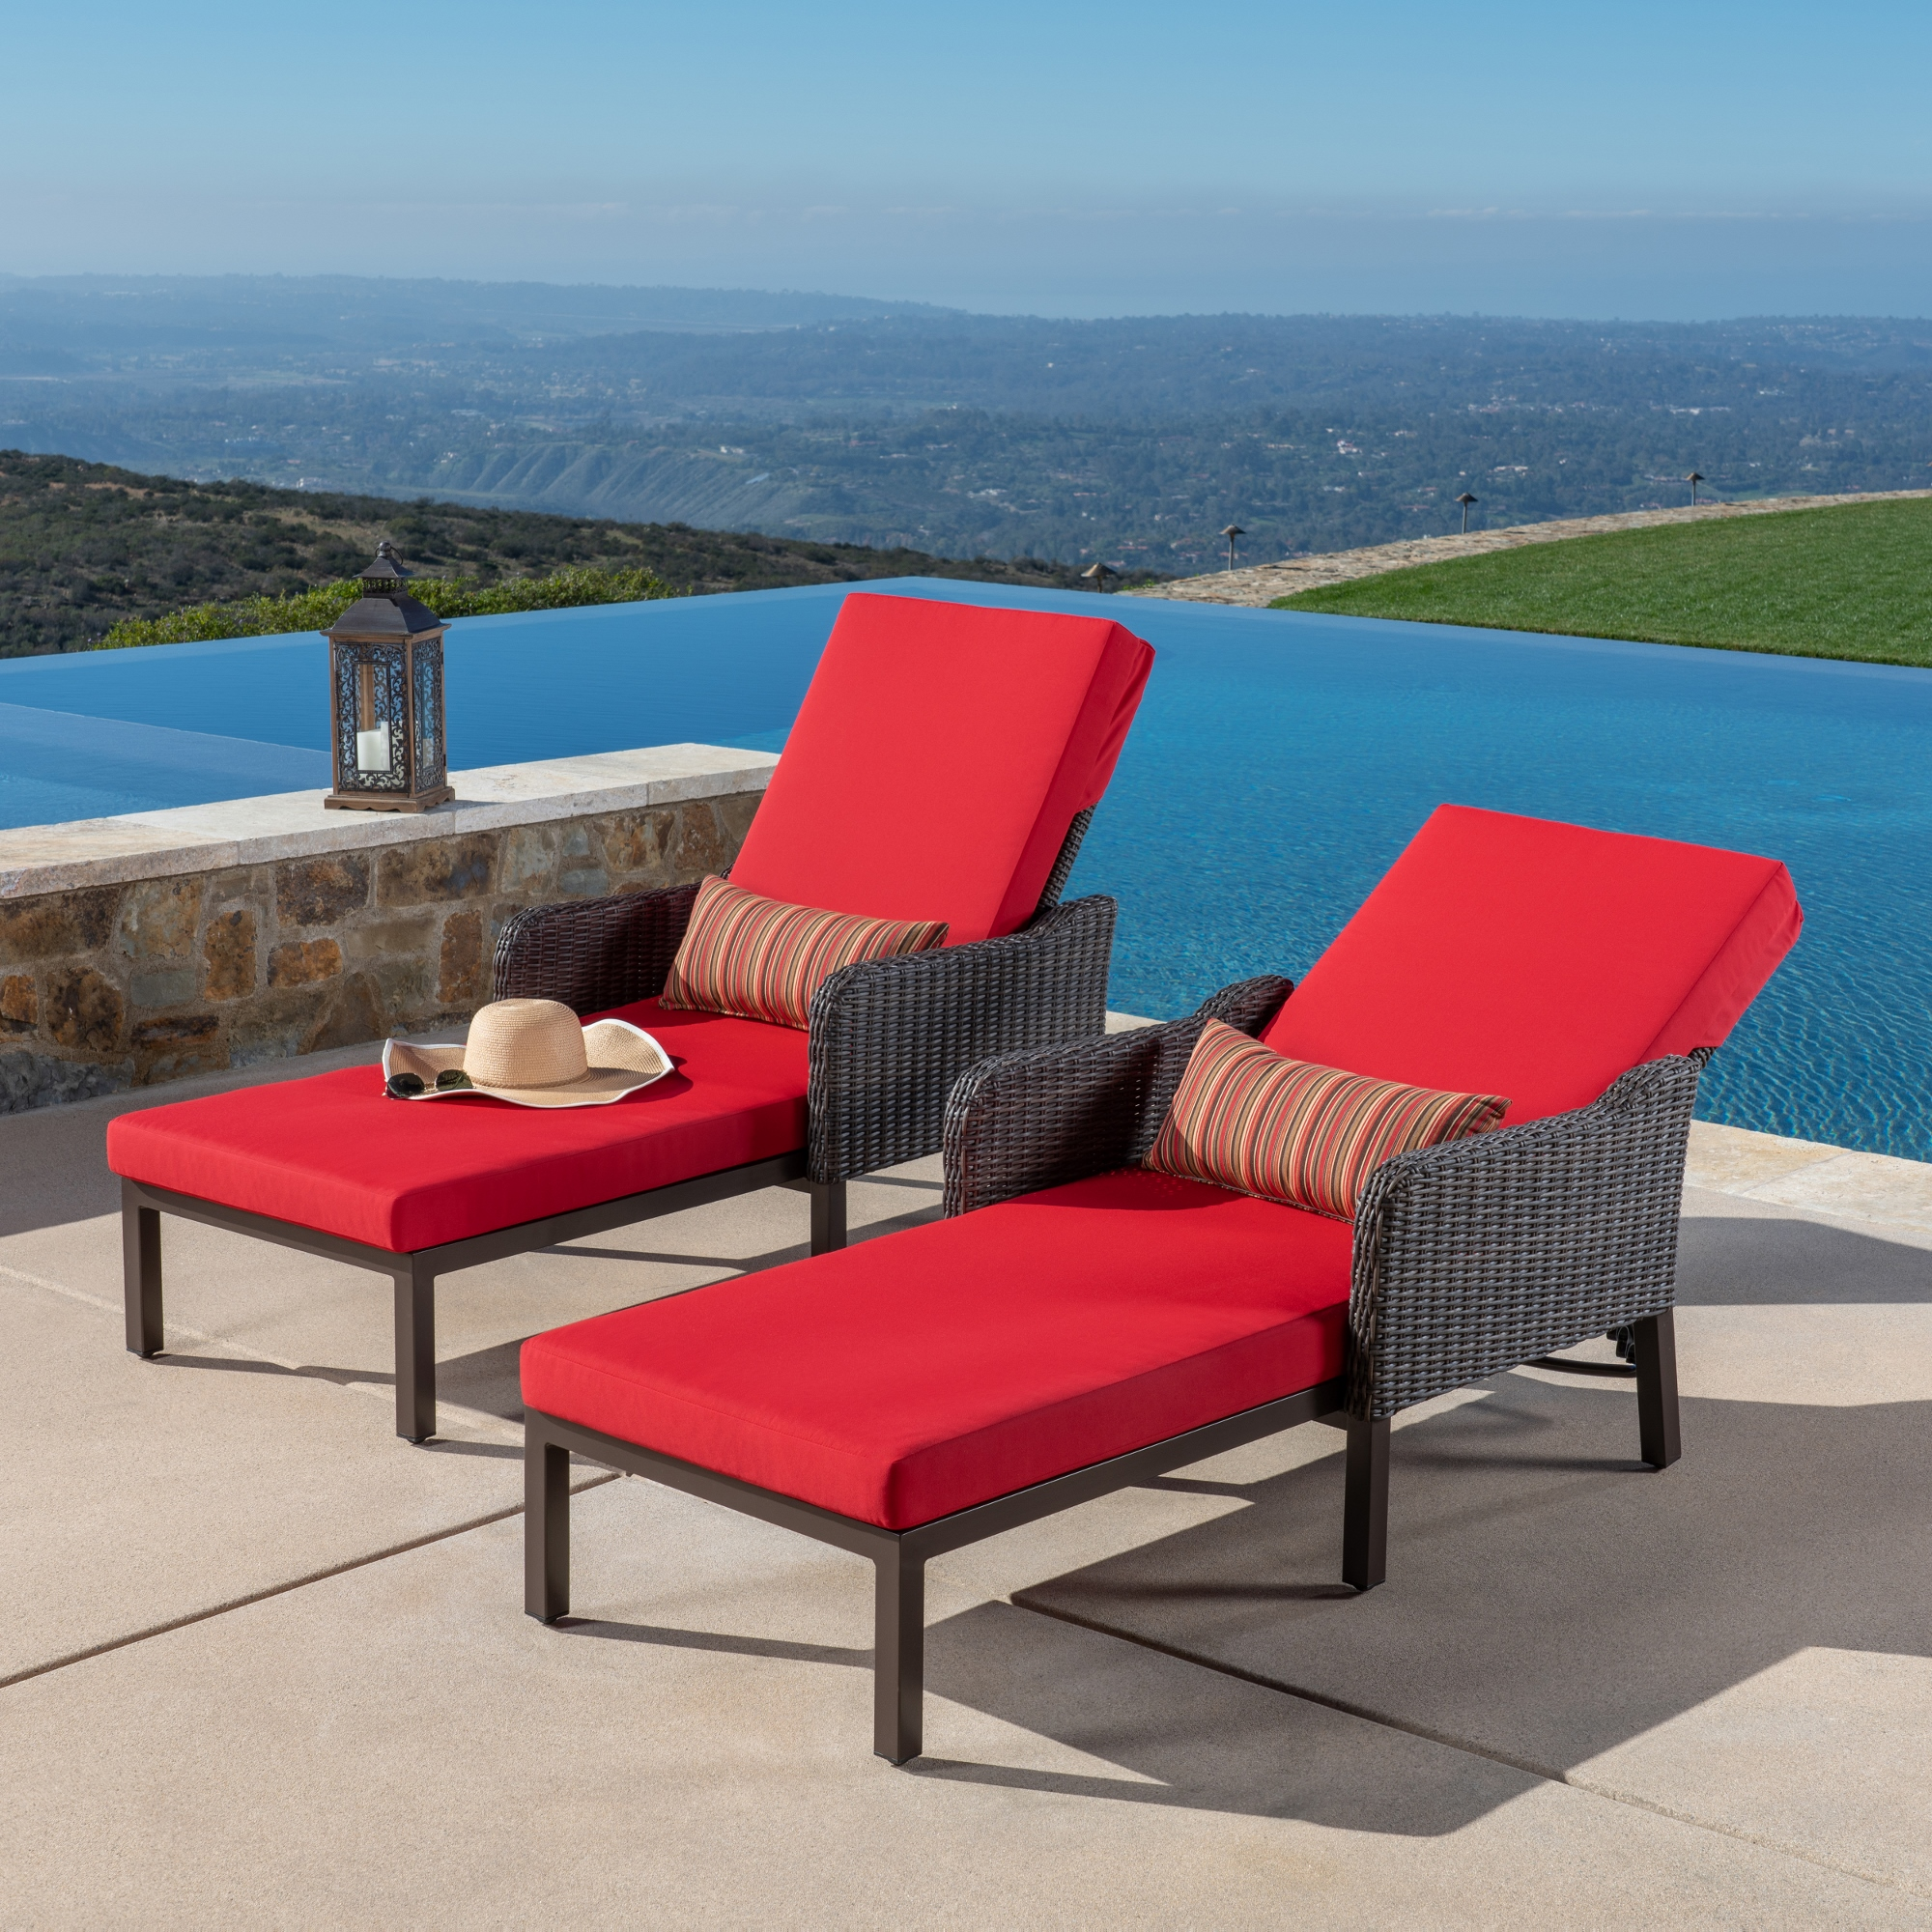 Brandemore 2pk Chaise Lounges Red Mission Hills Furniture